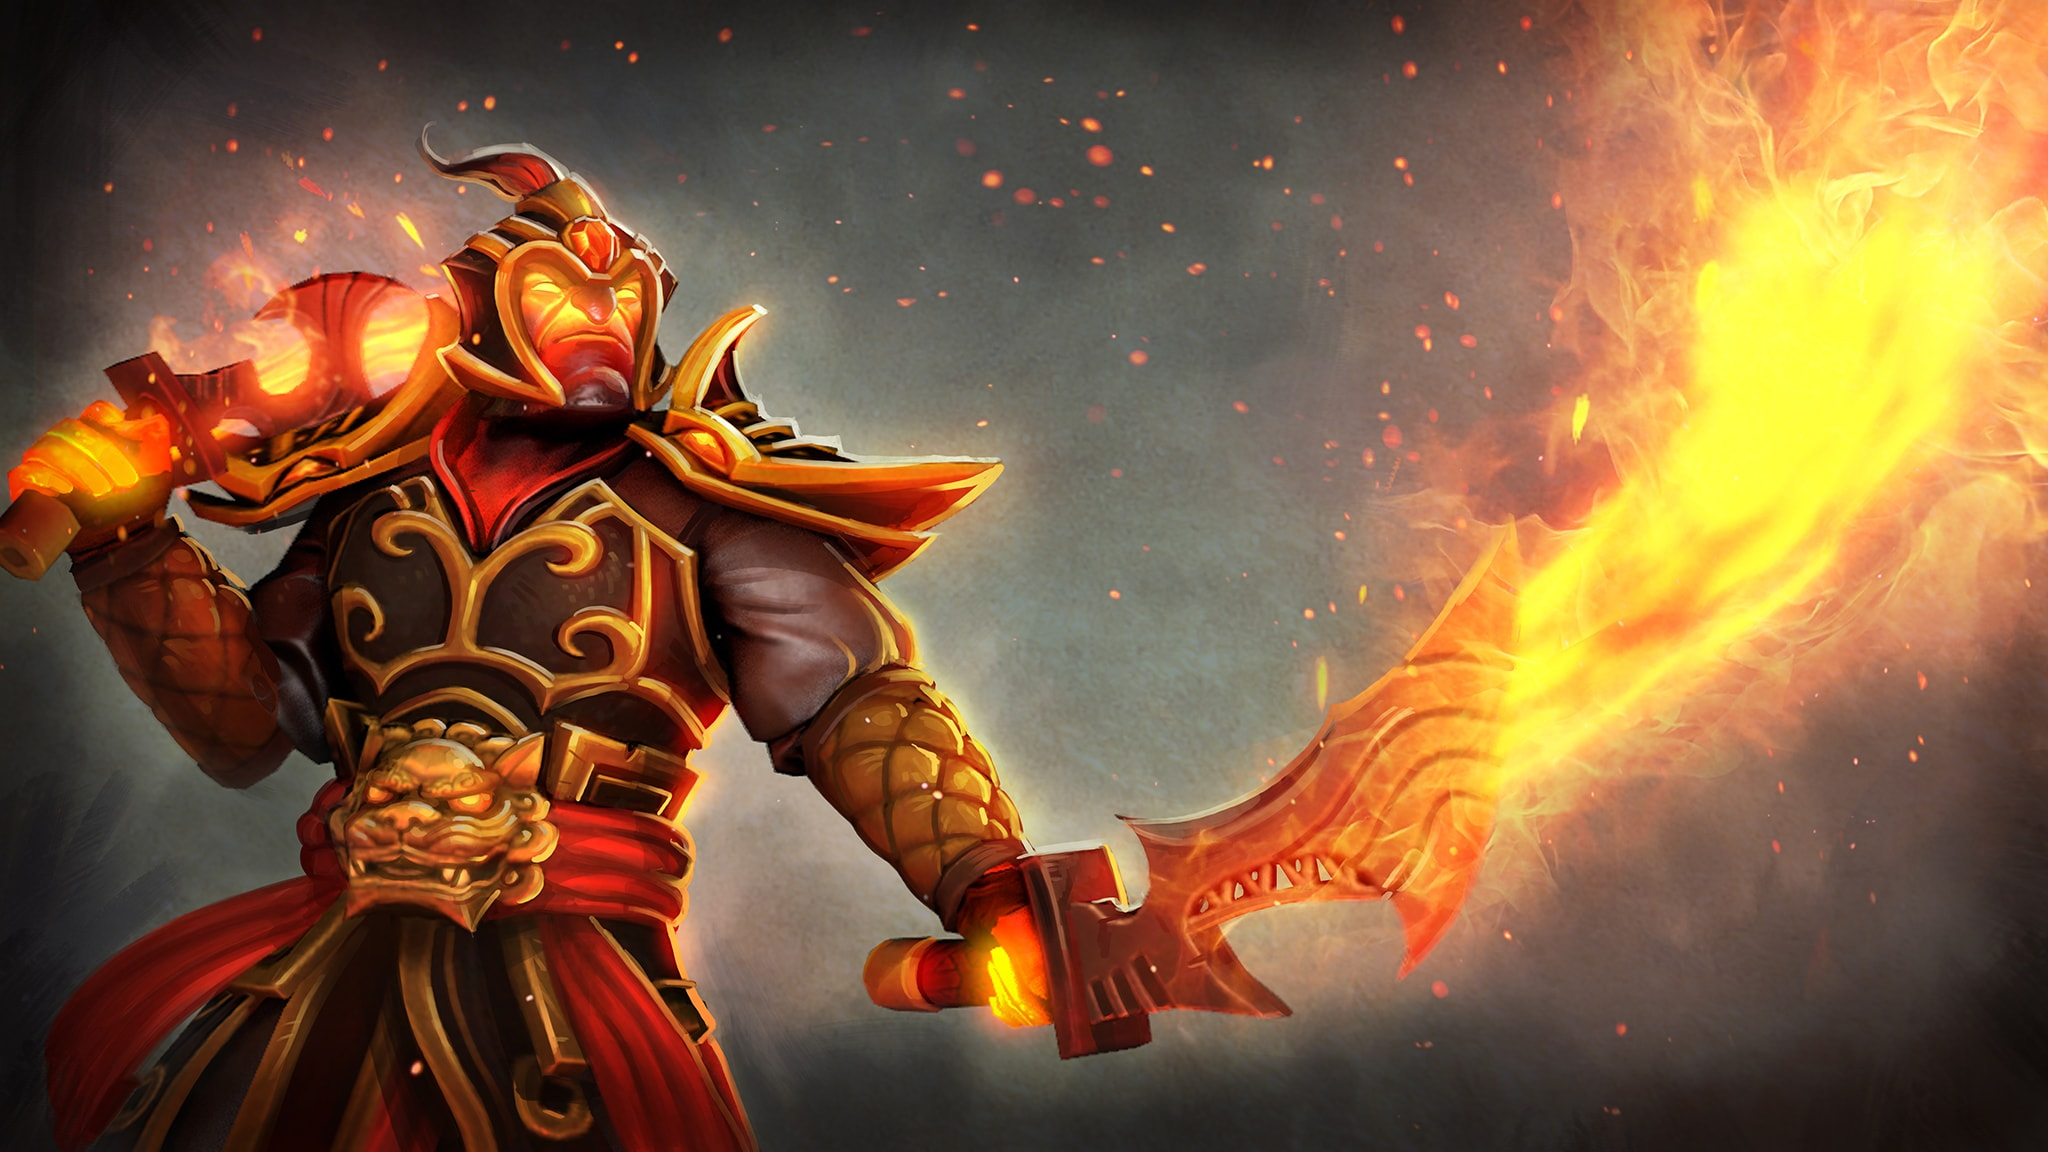 Dota2 : Ember Spirit widescreen wallpapers